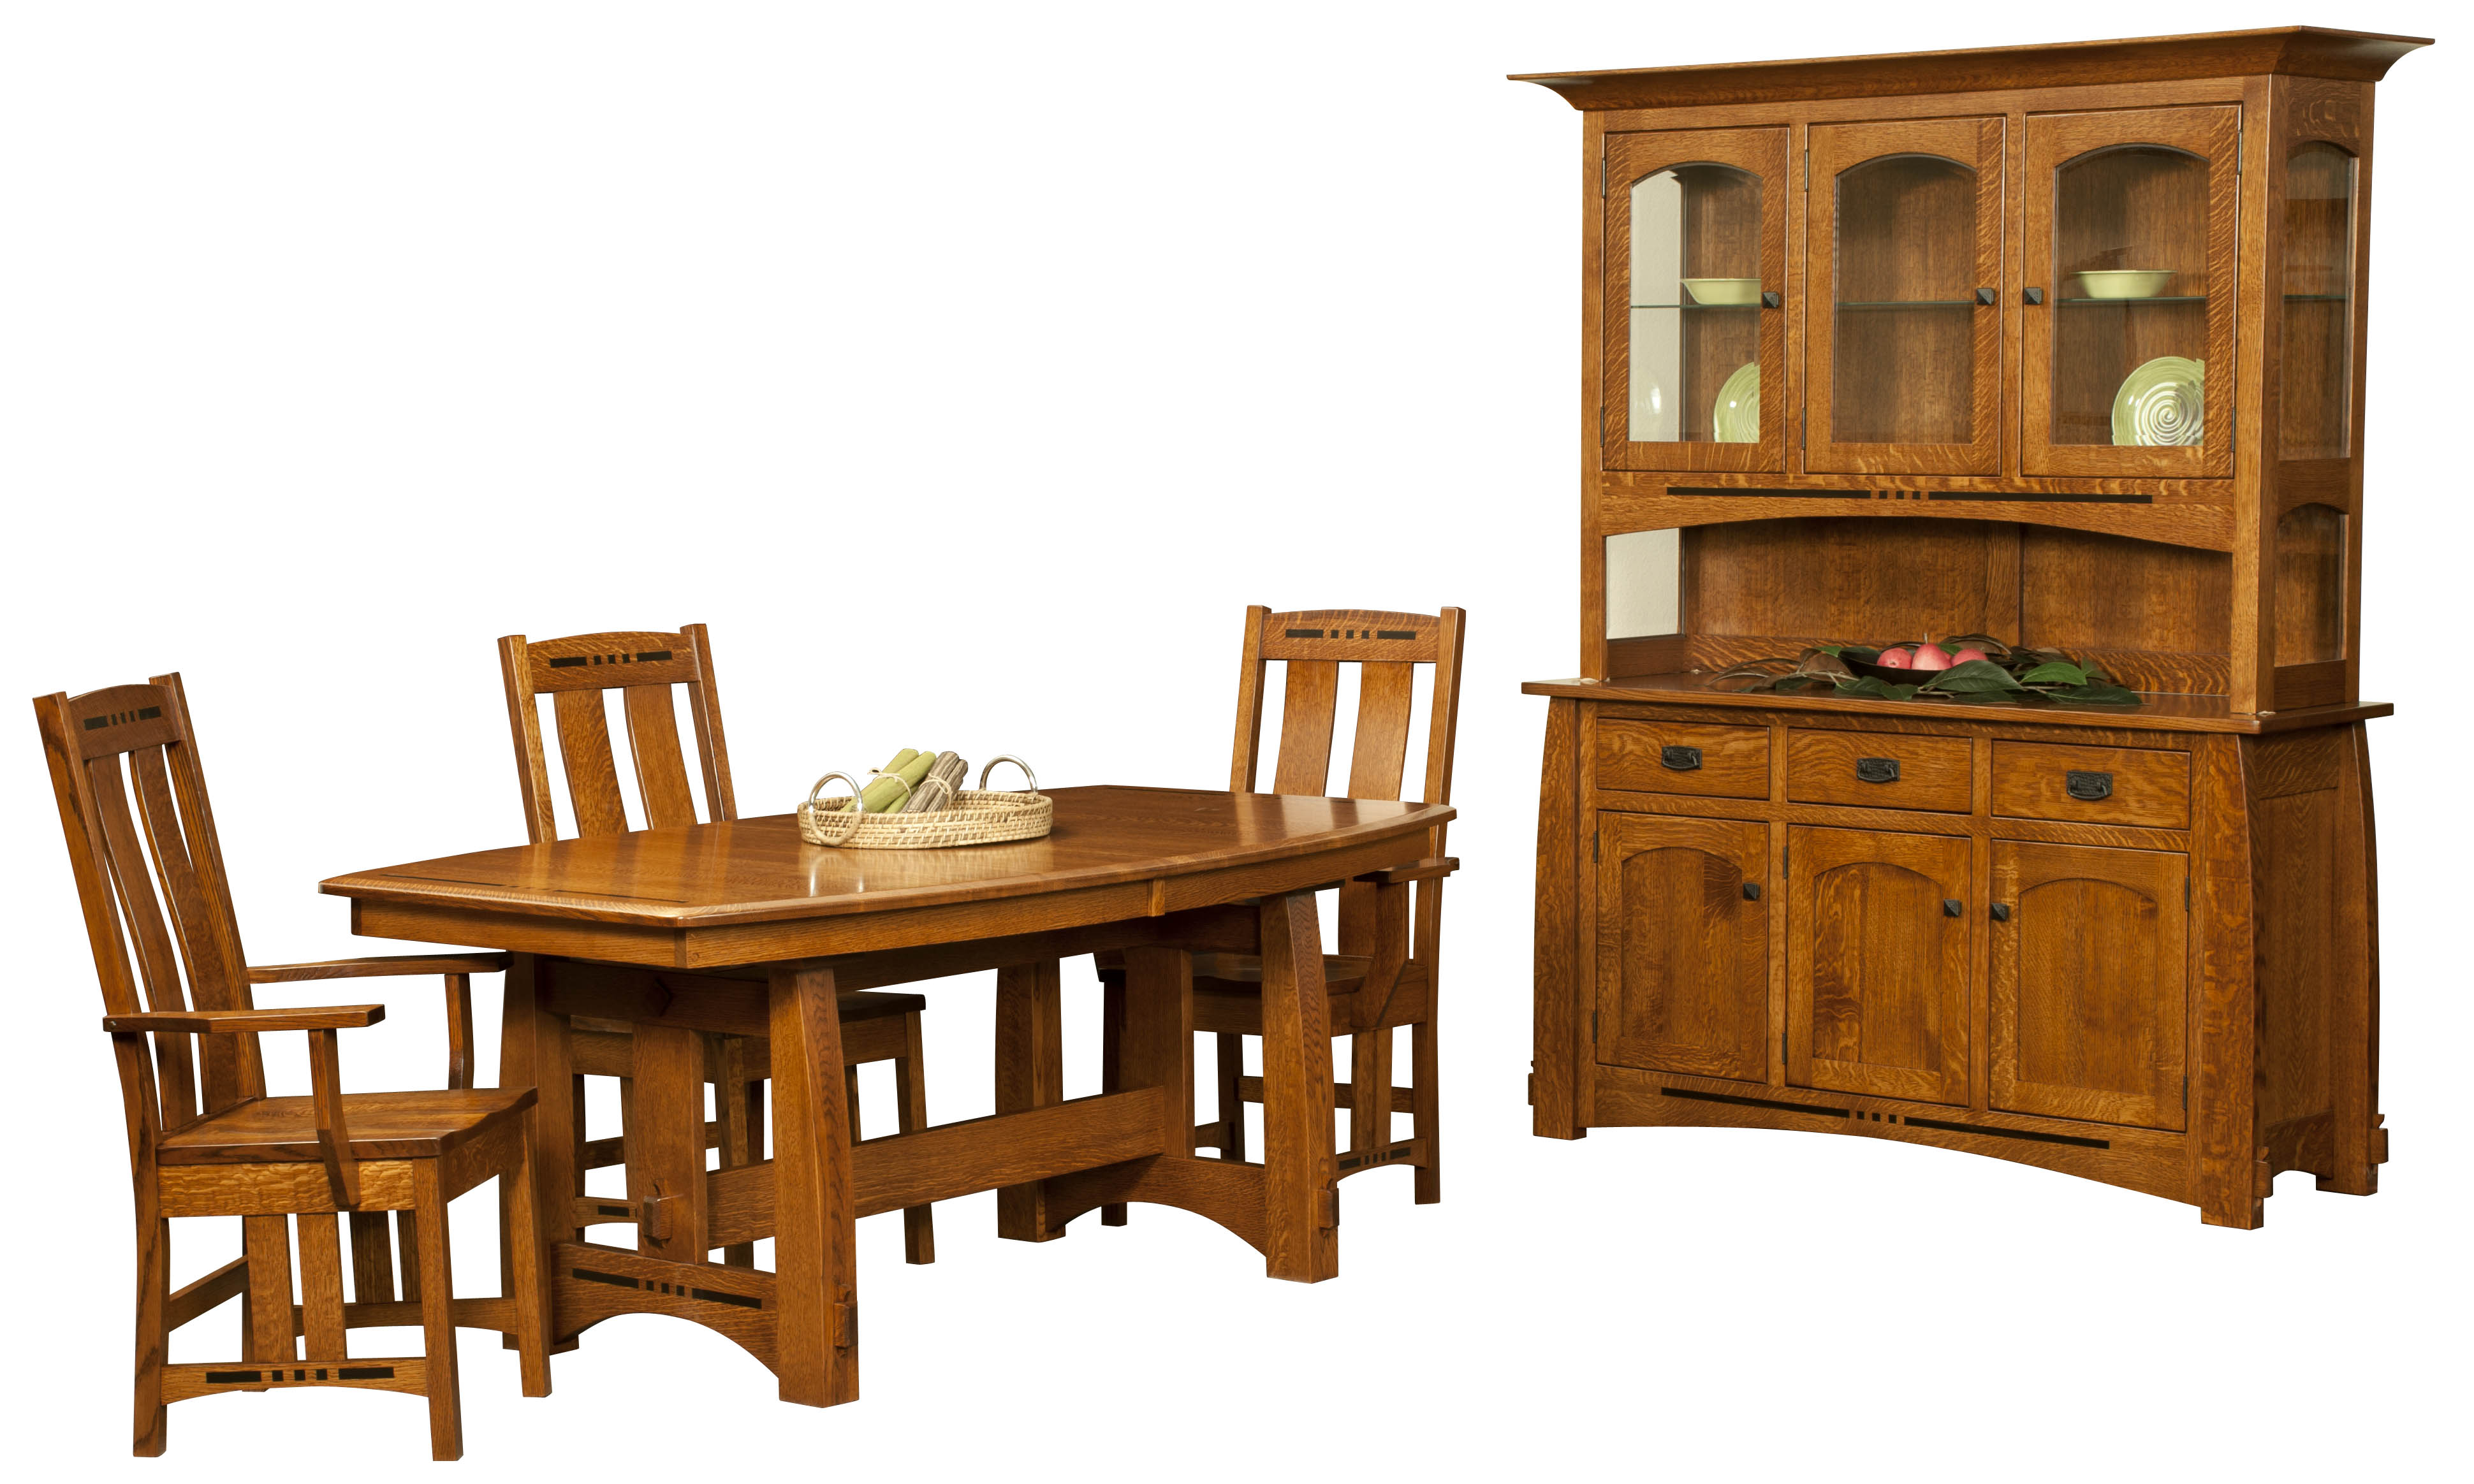 Bangalore Furnitures Listing, Furniture Manufacturers, Suppliers.